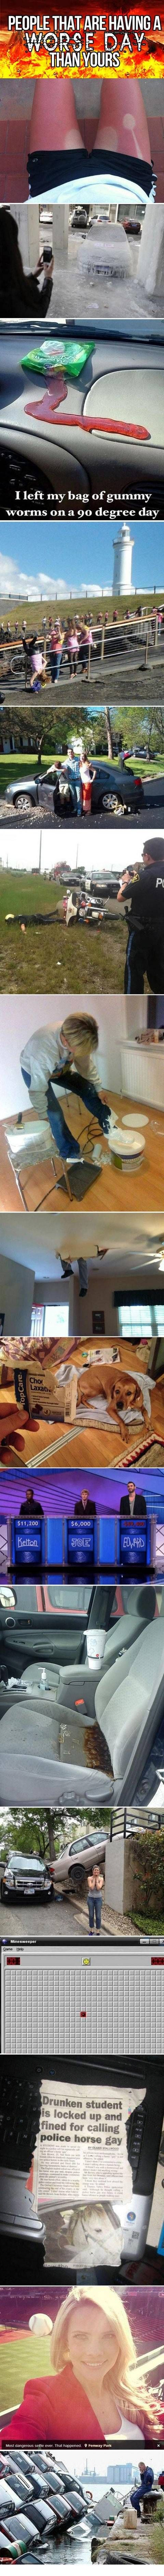 People that are having a worse day than you. hahaha this is fantastic---so sad, but FANTASTIC!!!